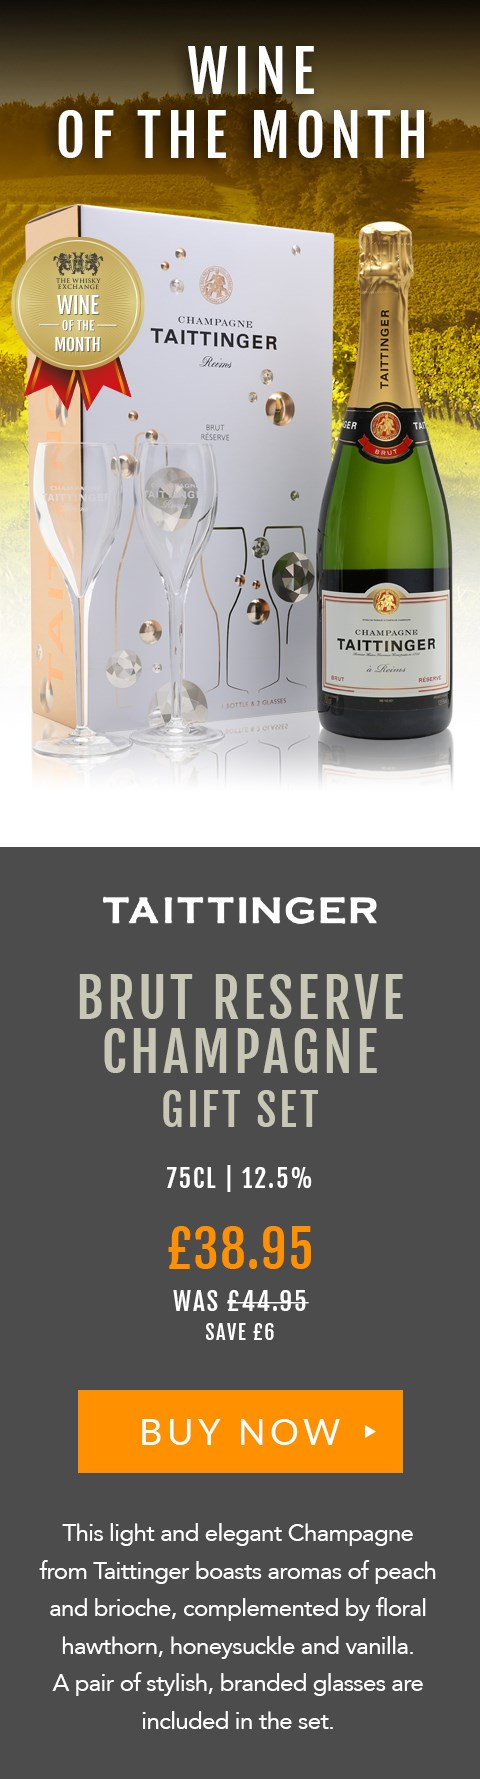 WINE OF THE MONTH  Taittinger Brut Reserve Champagne Gift Set  75cl | 12.5%  £38.95 (was £44.95)  Save £6  BUY NOW> https://www.thewhiskyexchange.com/feature/wineofthemonth  This light and elegant Champagne from Taittinger boasts aromas of peach and brioche, complemented by floral hawthorn, honeysuckle and vanilla. A pair of stylish glasses are included in the set.